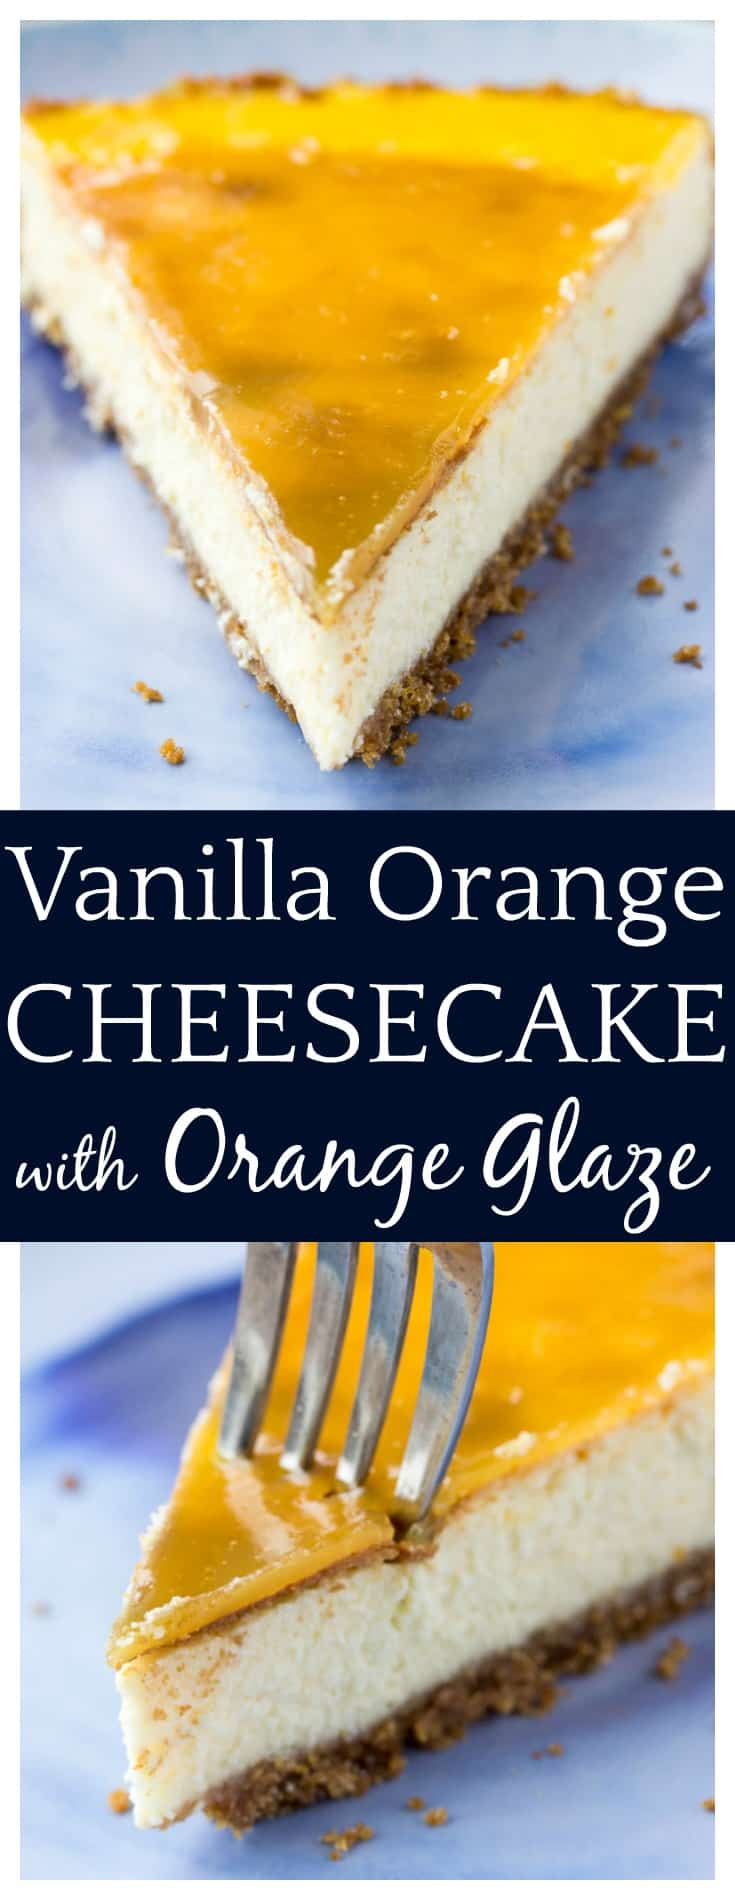 Fresh and bursting with citrus flavor, this Vanilla Orange Cheesecake with Orange Glaze is melt-in-your-mouth delicious! It's a great make-ahead dessert recipe! | #dessert #cheesecake #dessertrecipe #orangecheesecake #dlbrecipes